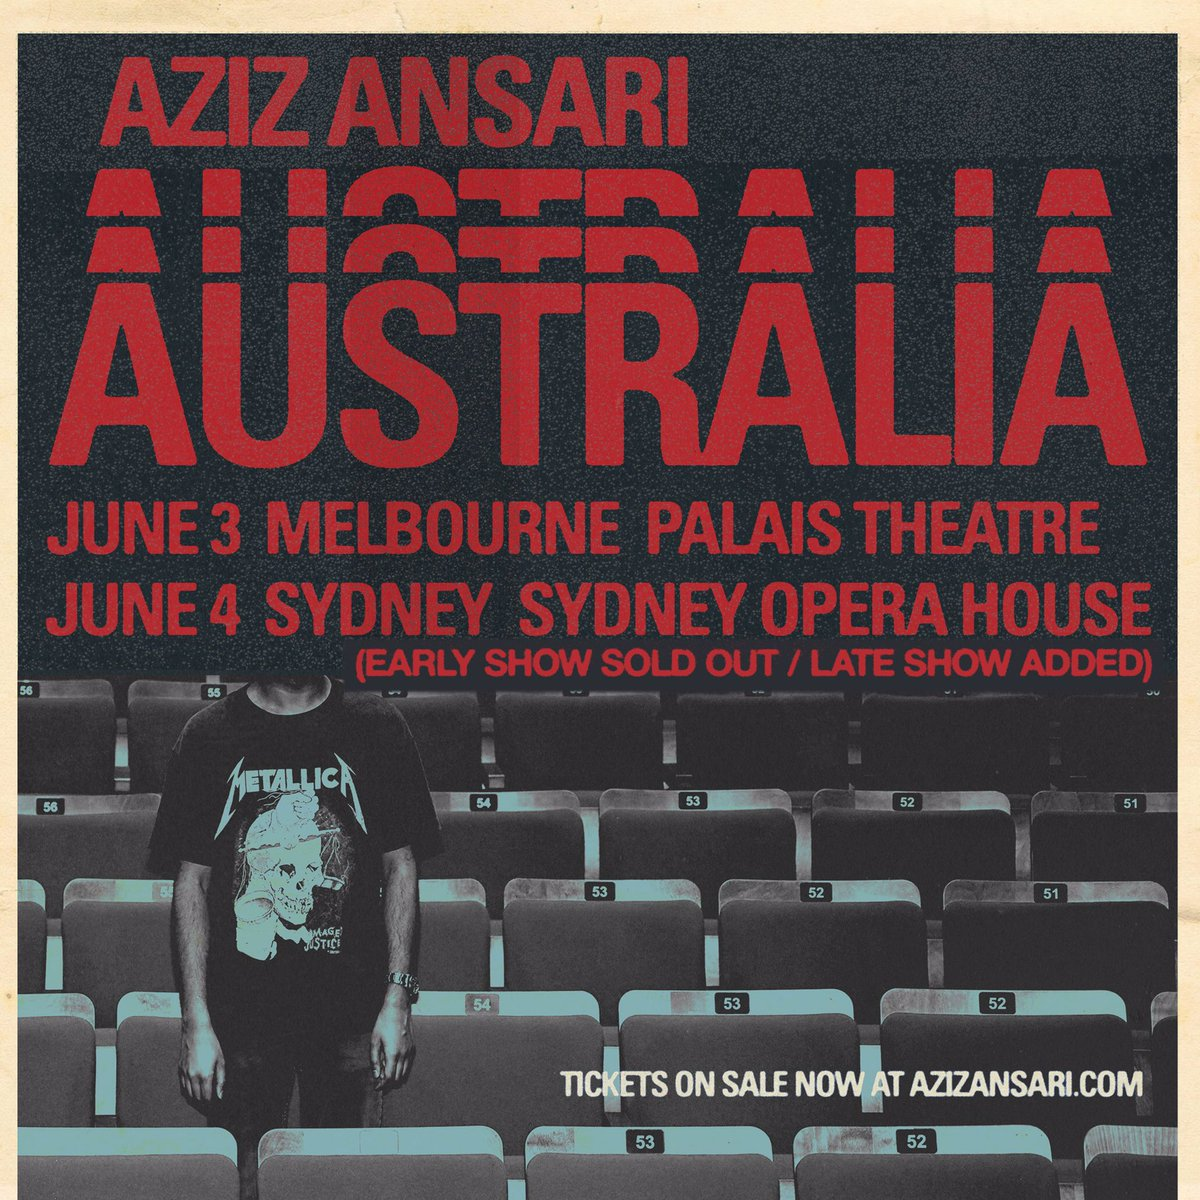 SYDNEY: First show sold out. Second show added. Get tix at